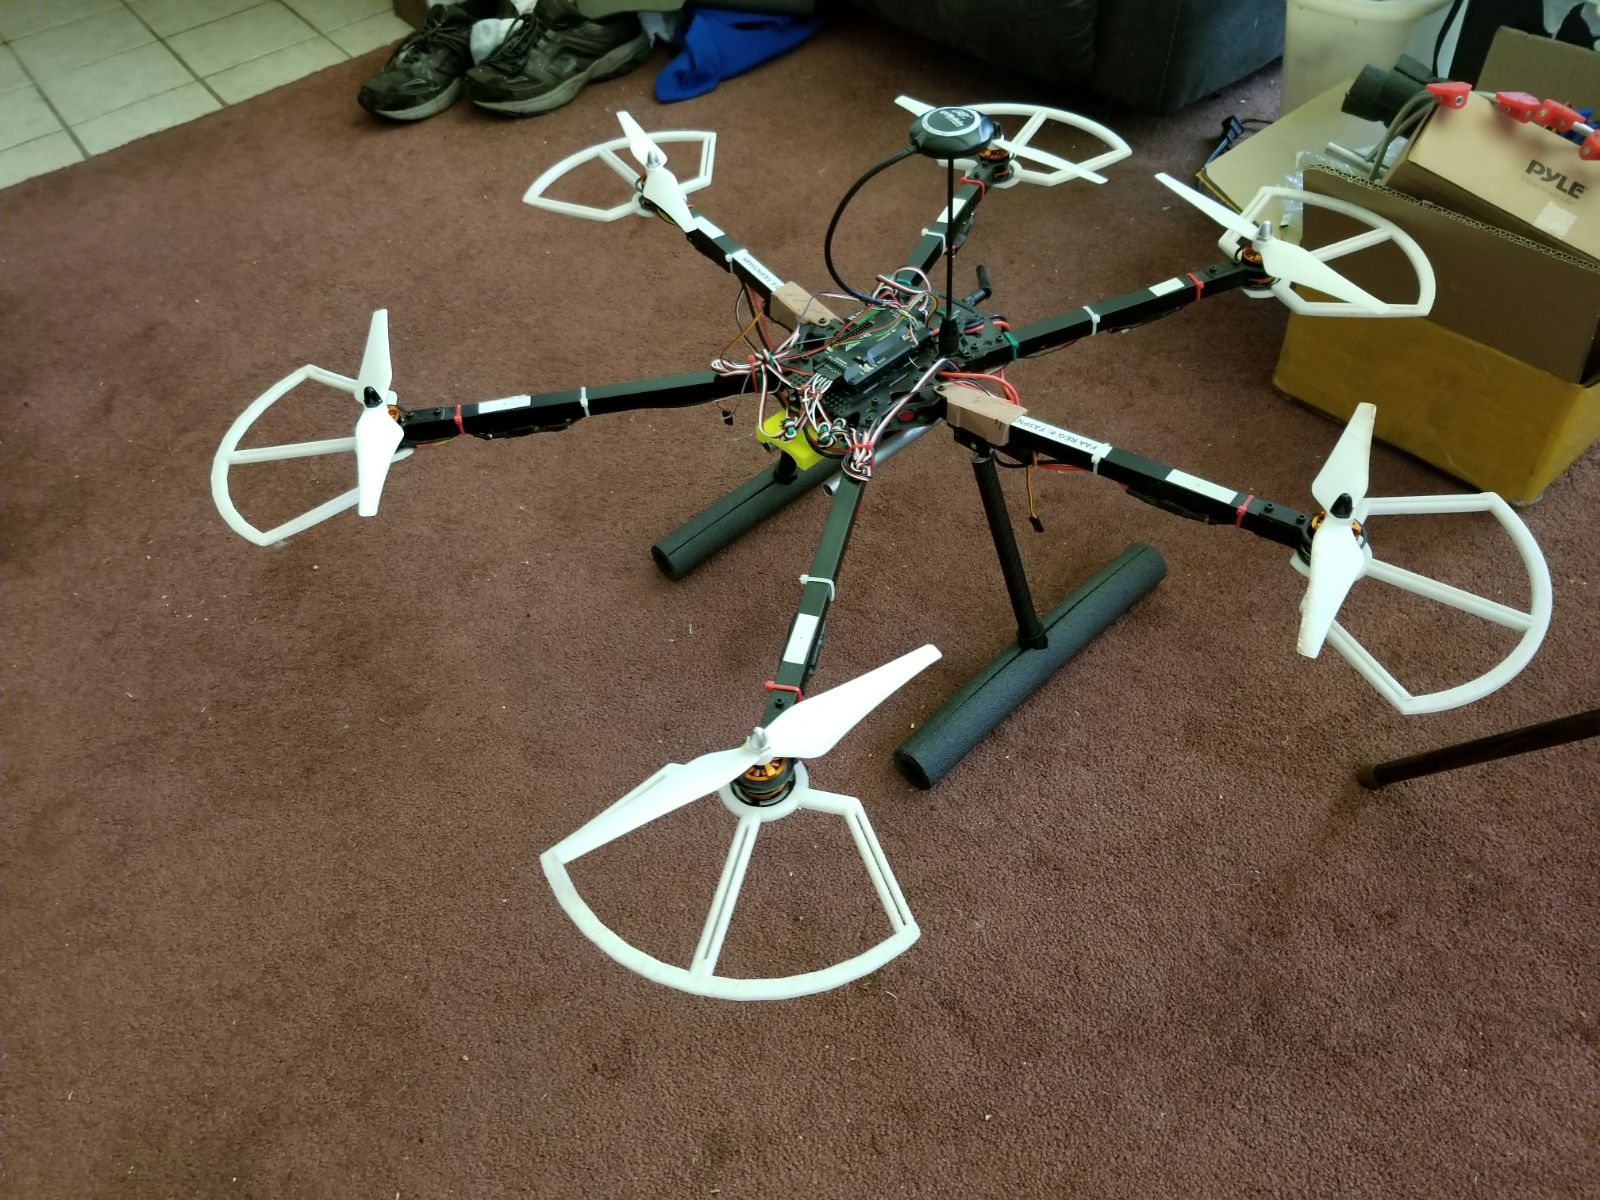 Drone with retracts mounted